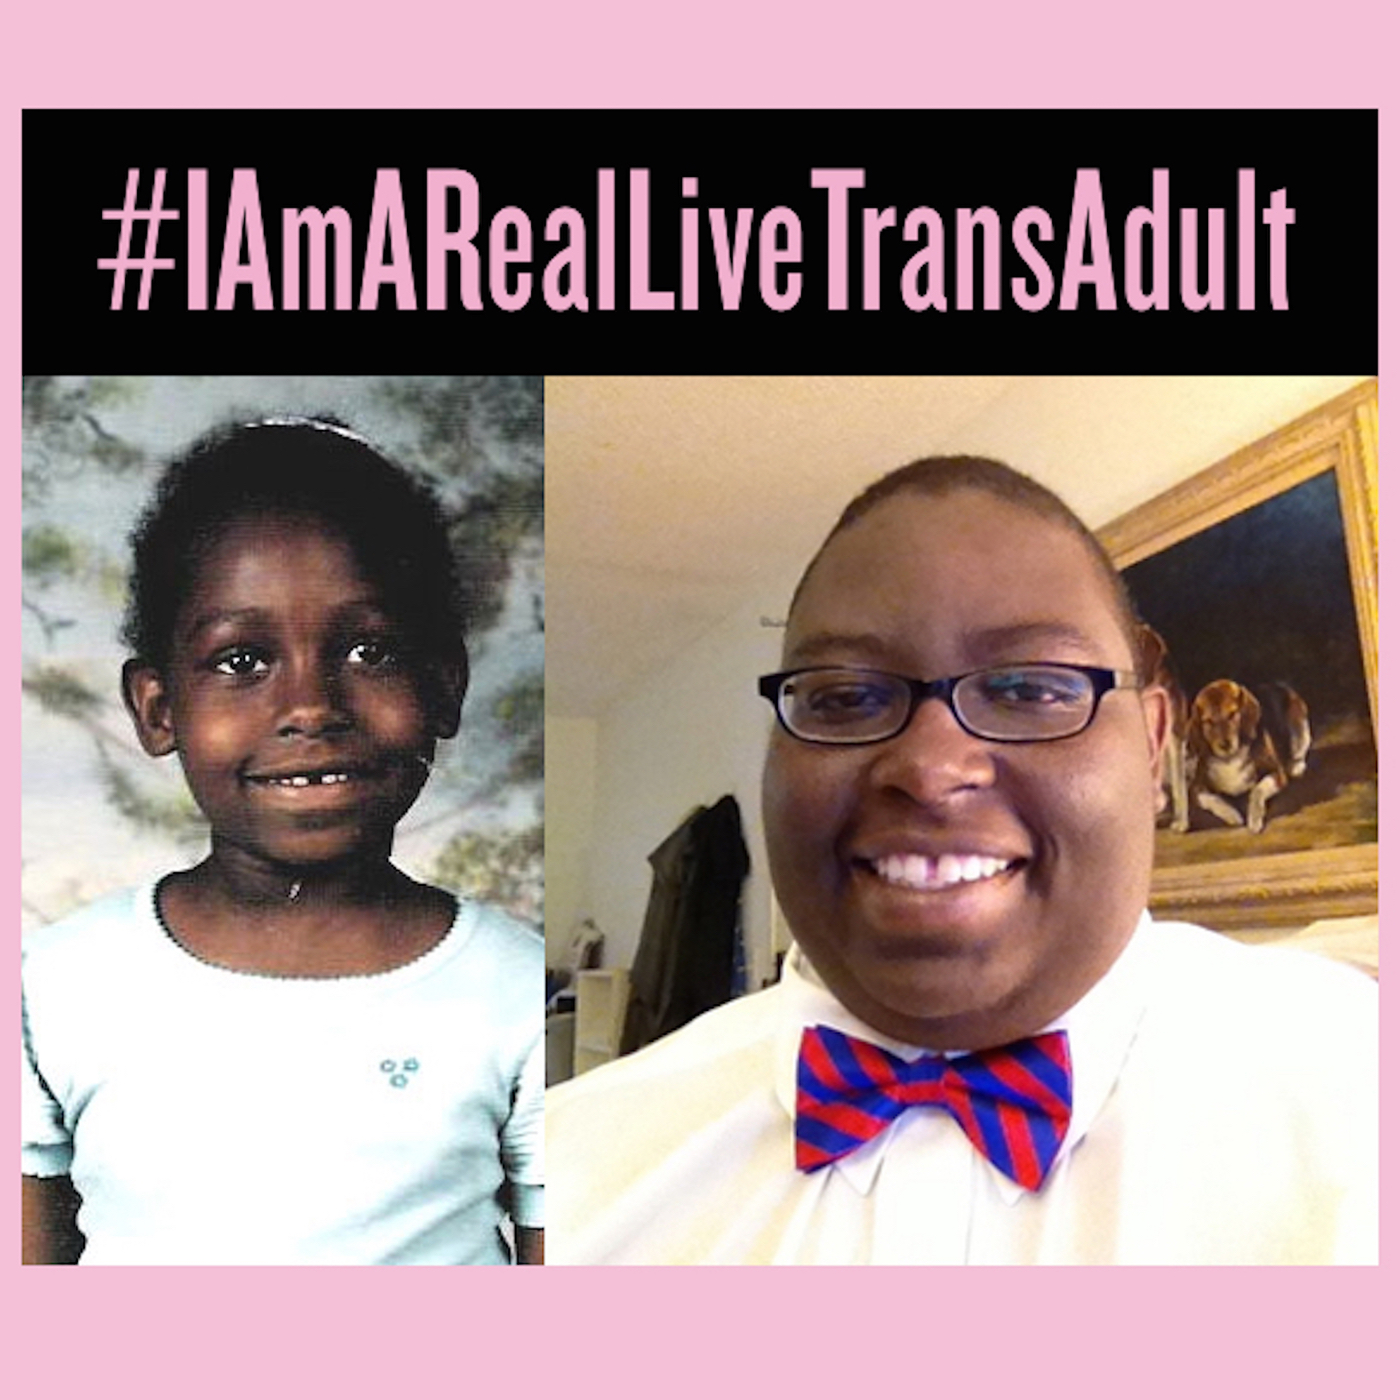 I Am A Real Live Trans Adult - #QueerAsPinkInk